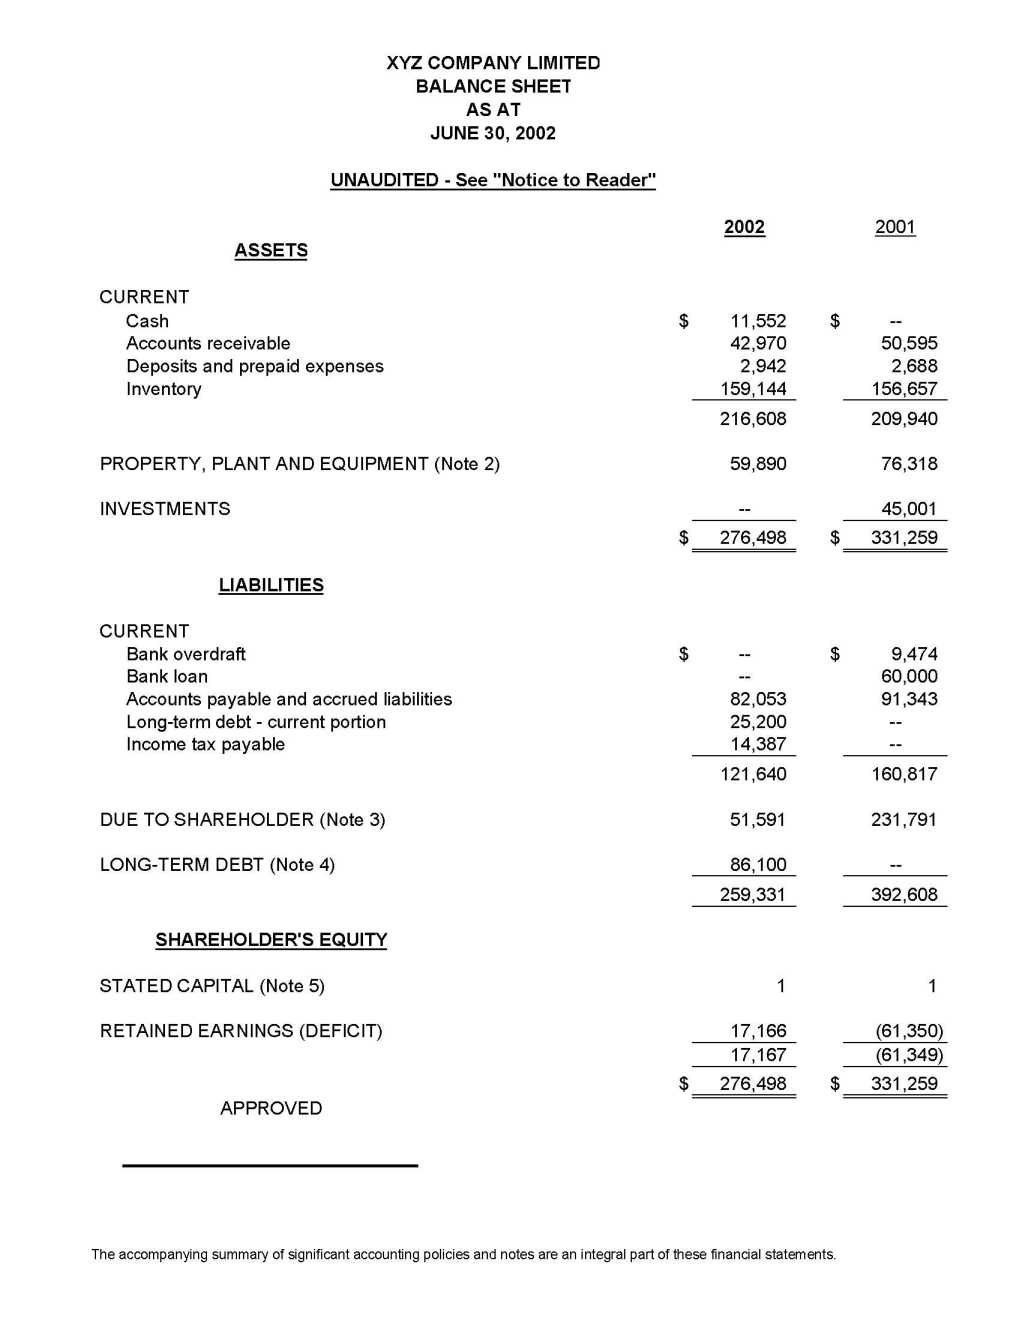 Douglas A. Boufford  Basic Financial Statement Template